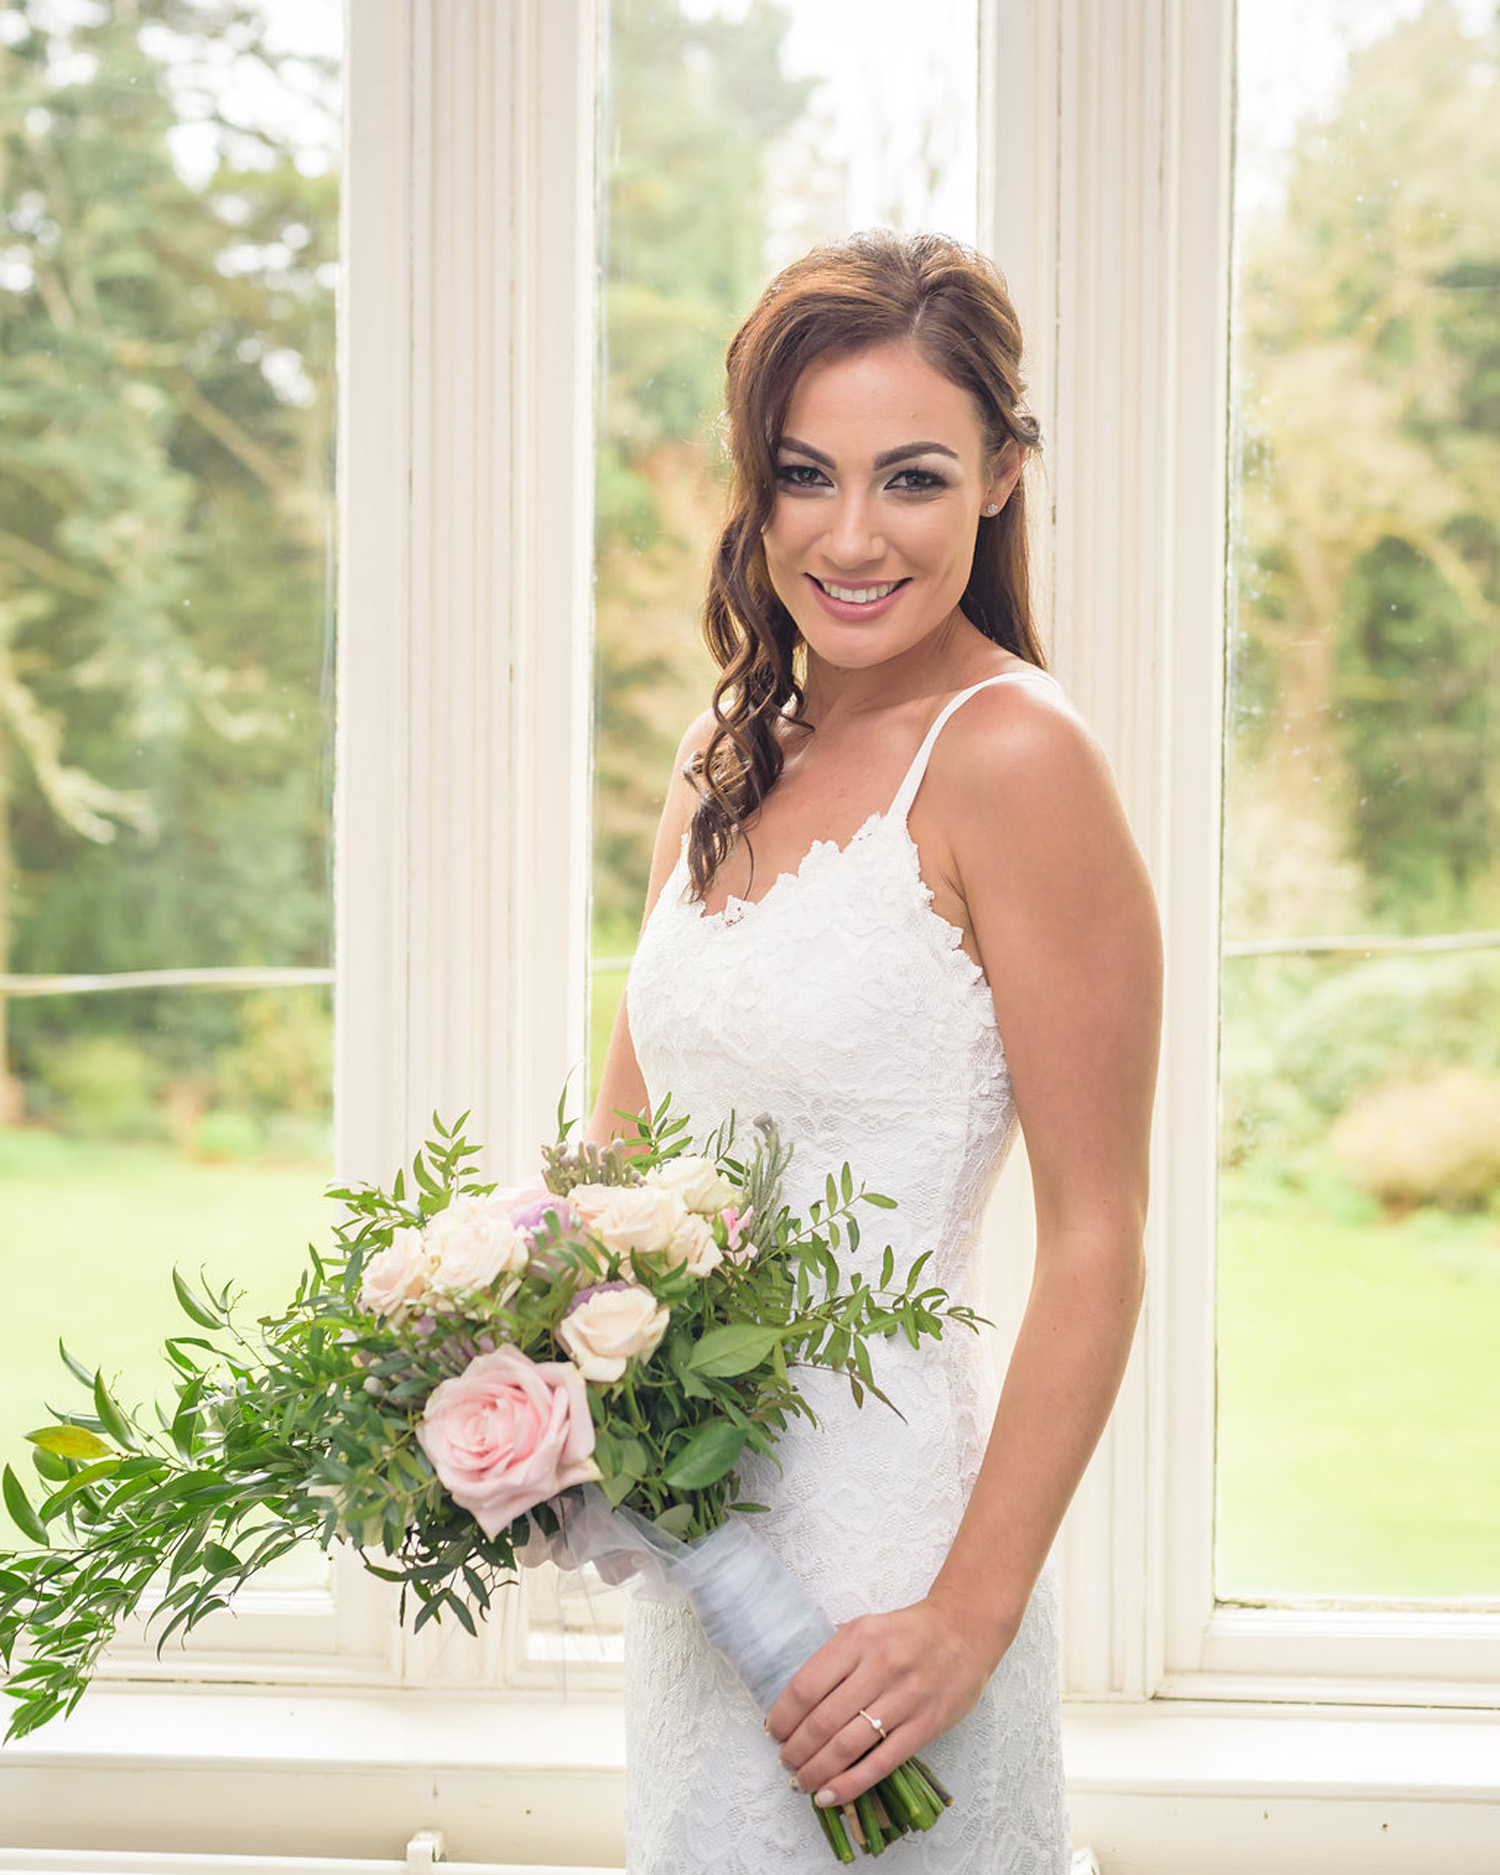 elope to ireland bride ready to get married standing with flowers A fun Elopement at an Irish Manor House Adventure